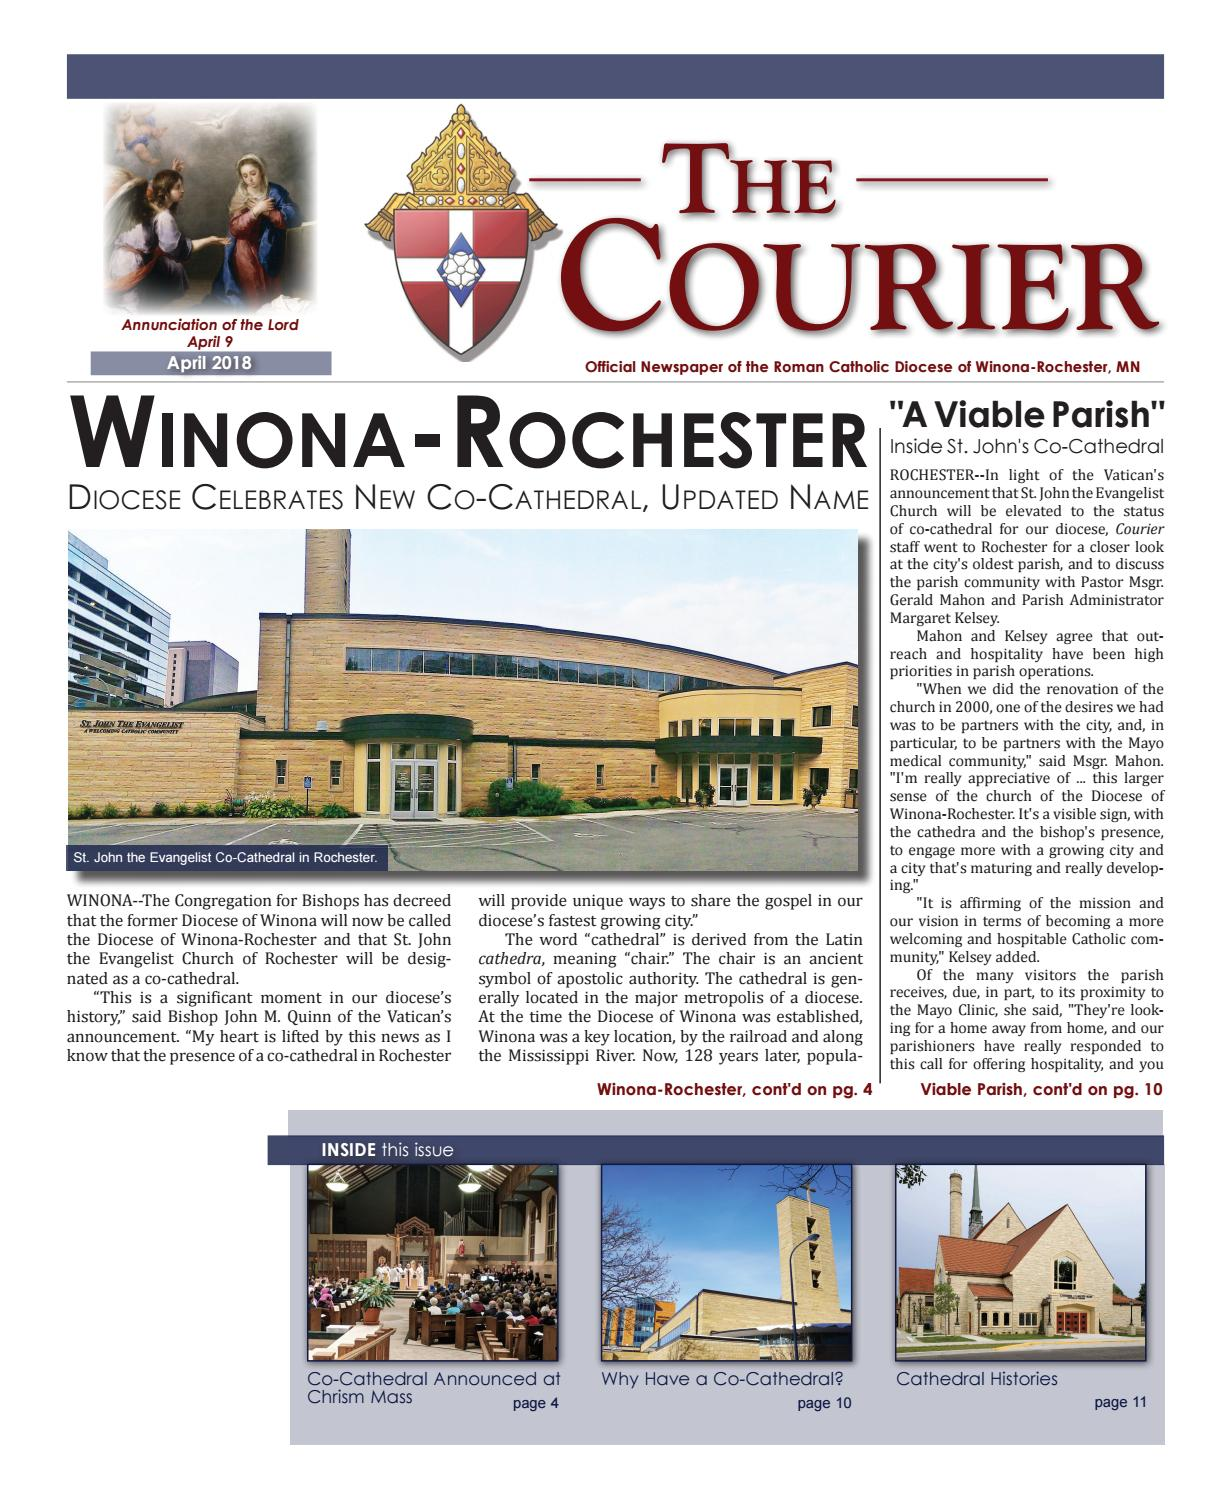 The Courier - April 2018 by Diocese of Winona-Rochester - issuu